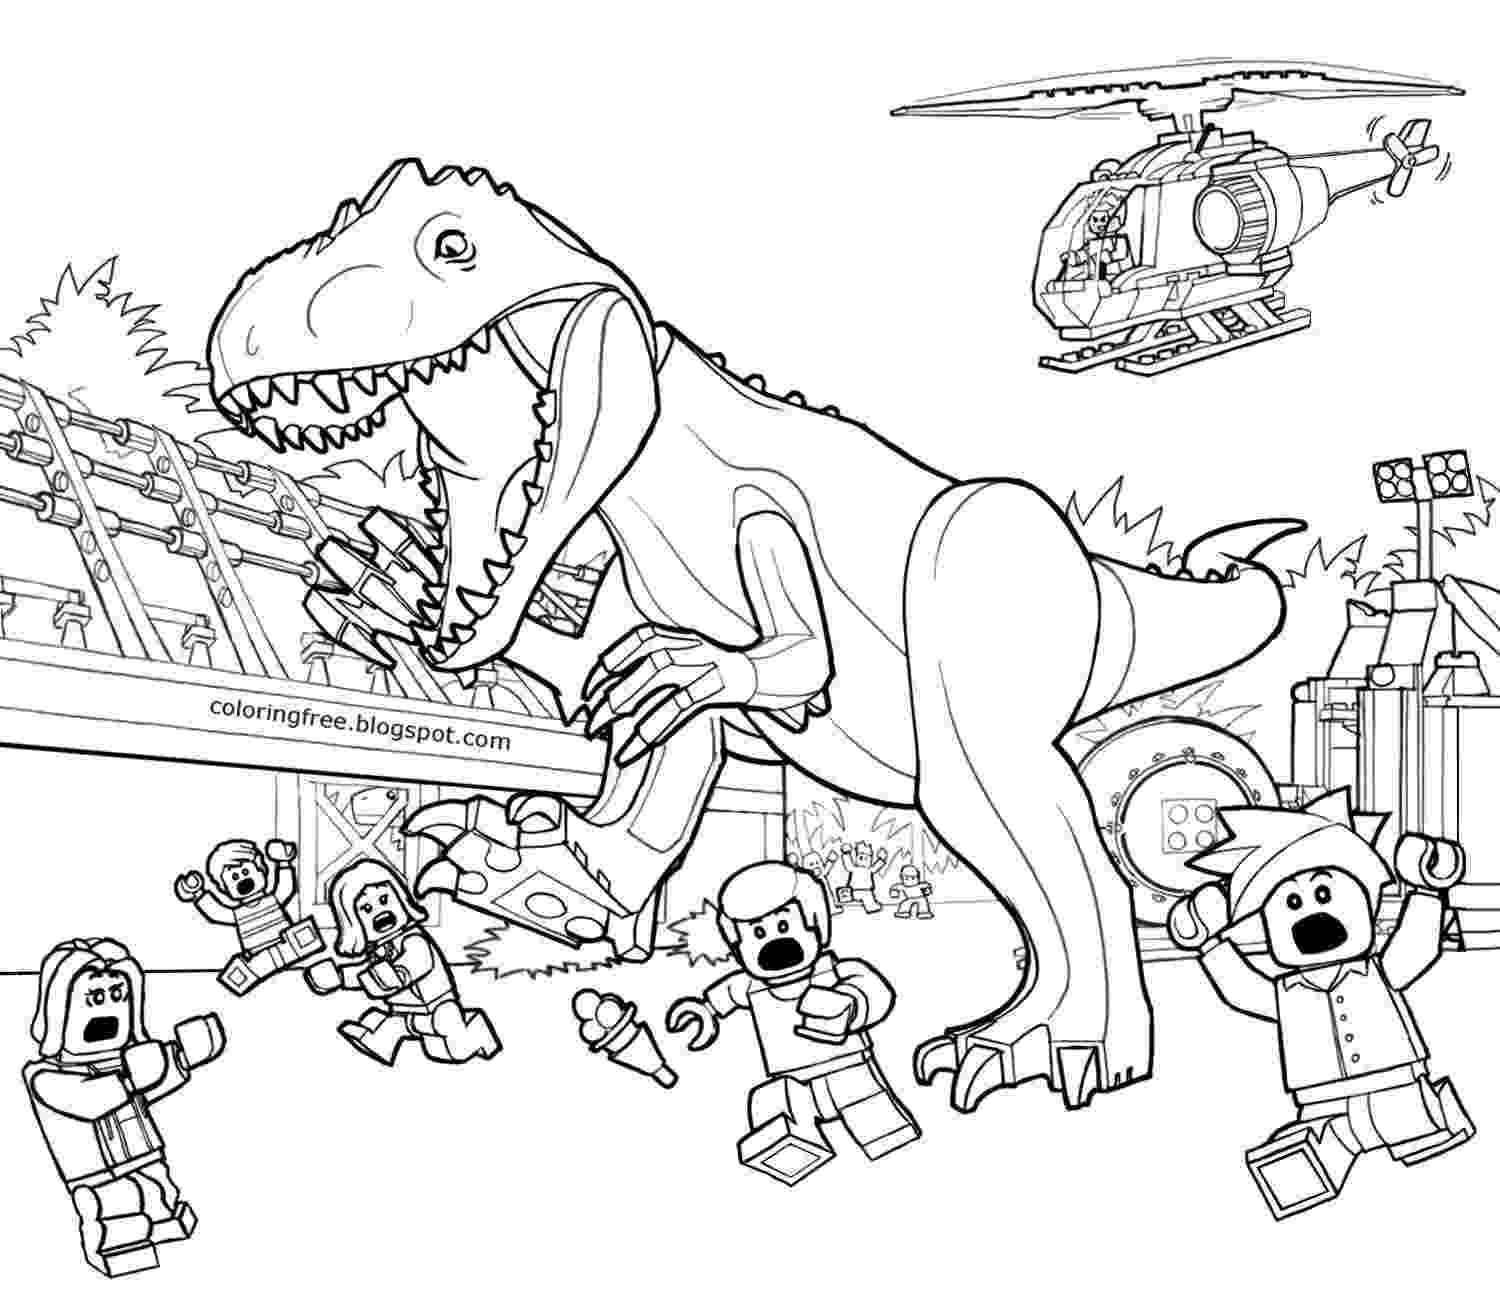 jurassic park coloring 17 best images about jurrasic party on pinterest party jurassic park coloring